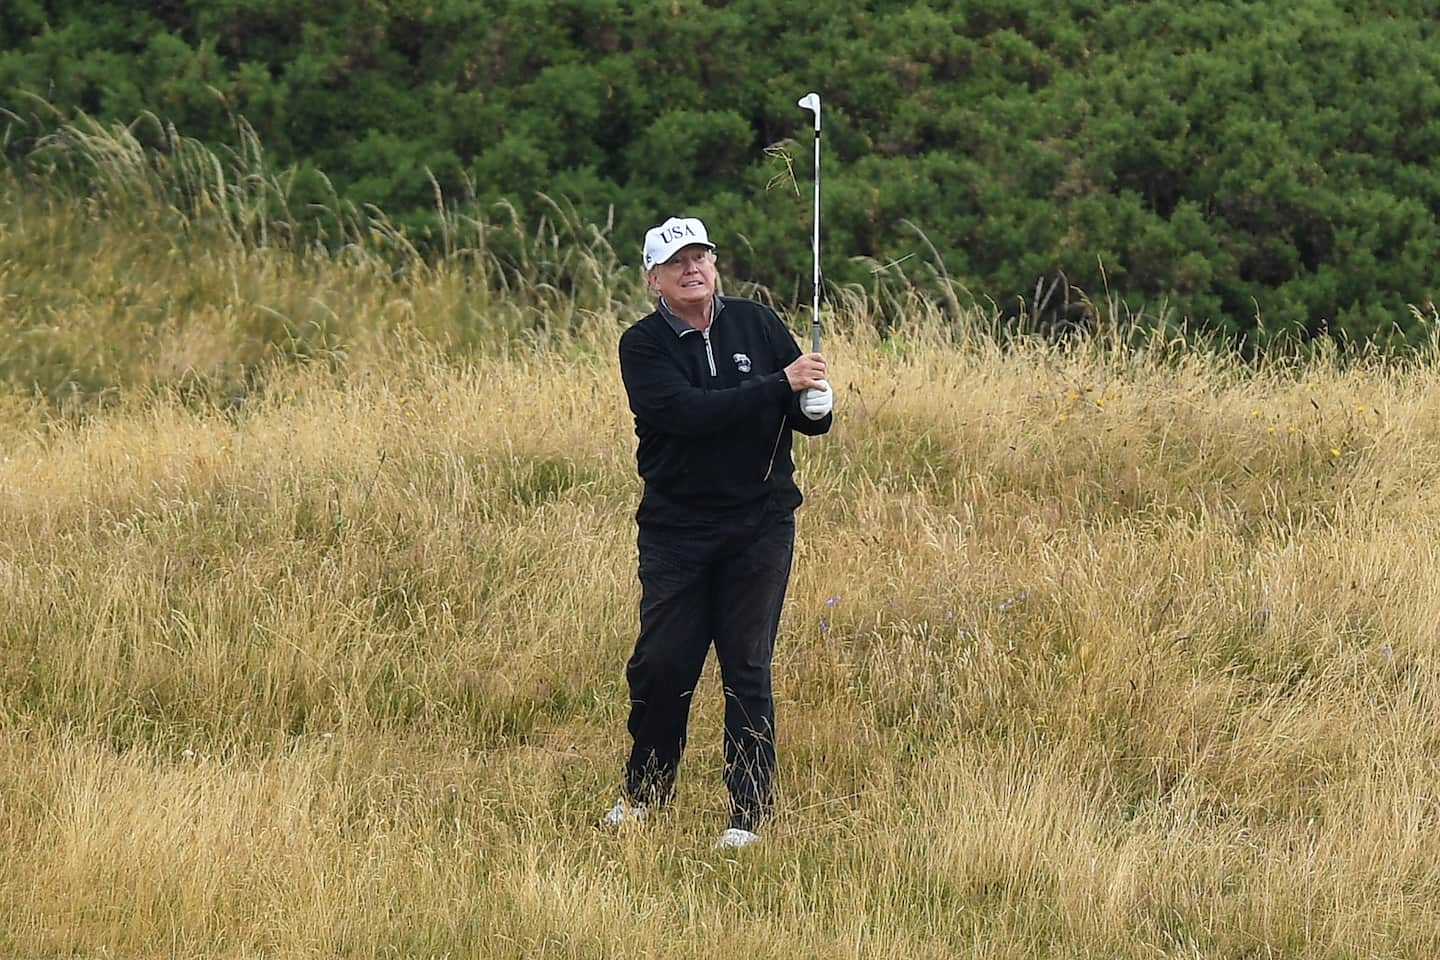 Trump spends the inauguration day in Scotland?  Scottish leader Nicola Sturgeon responds to the rumors and warns that golf isn't necessary for travel.